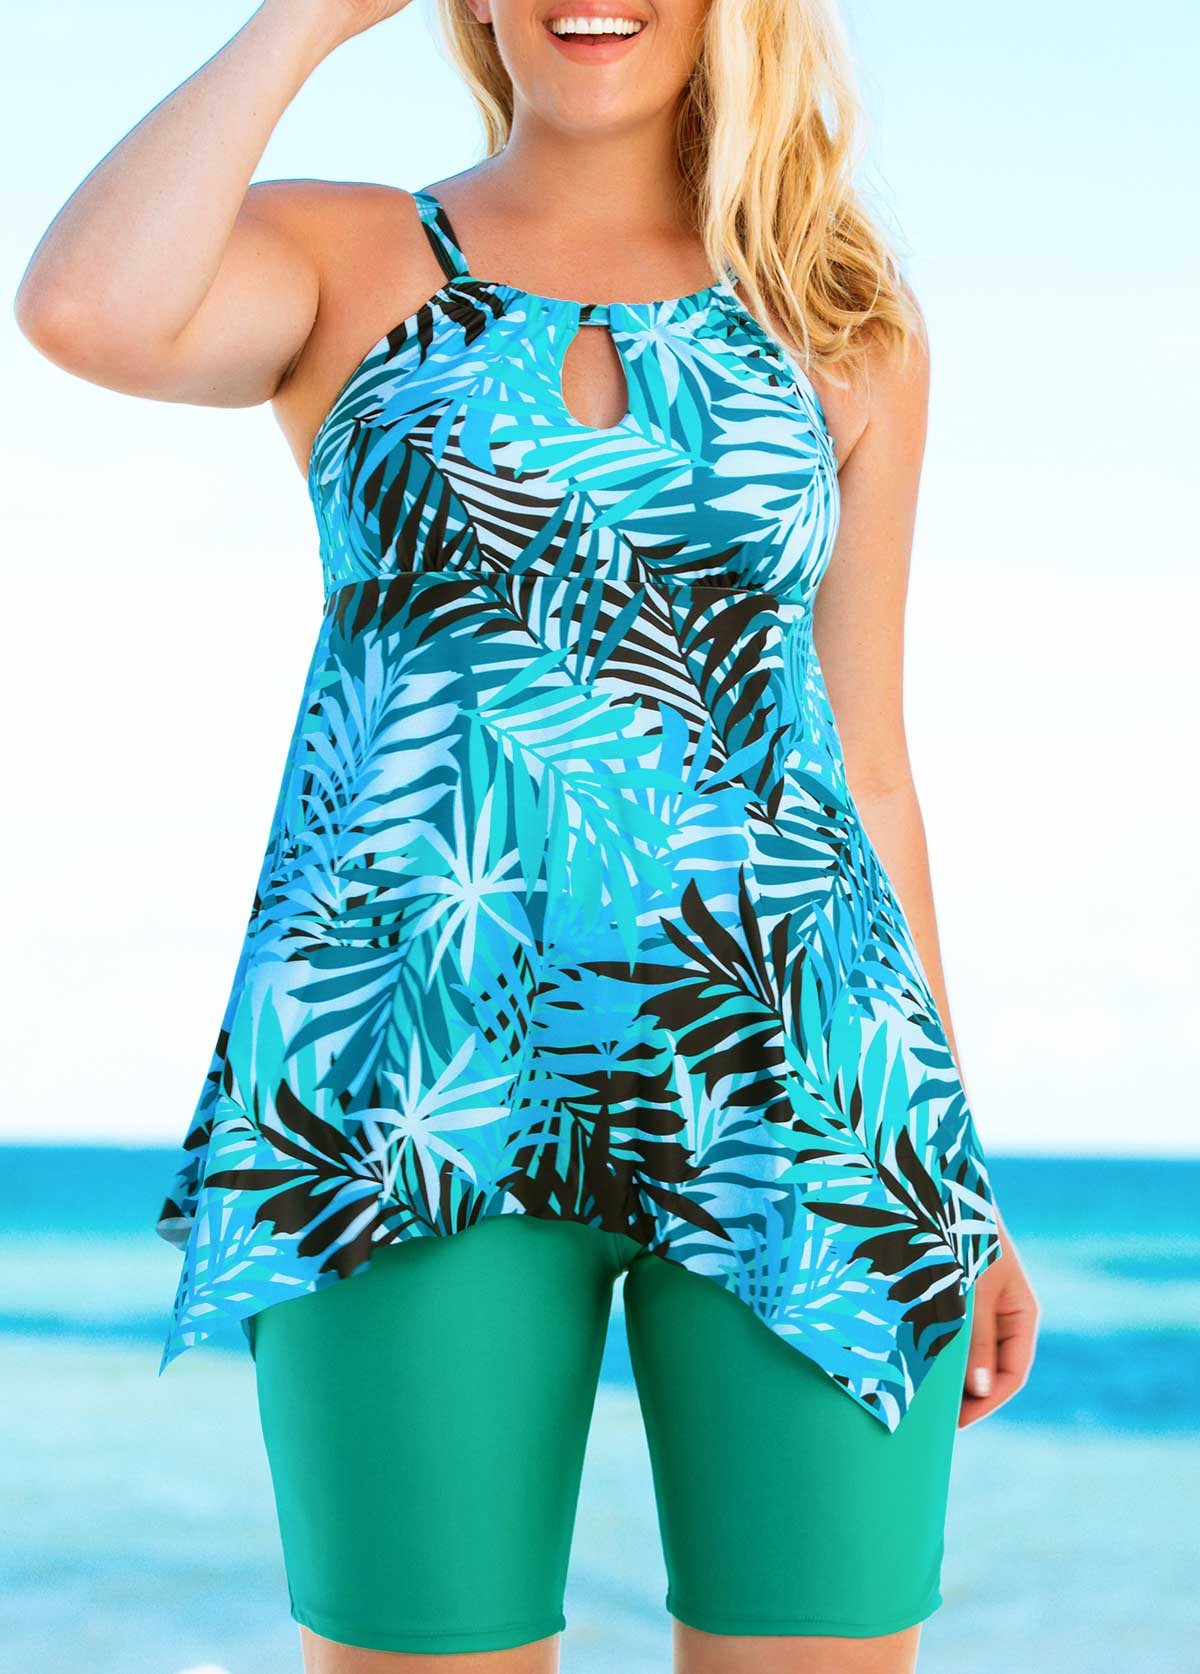 Plus Size Printed Tankini Top and Green Shorts